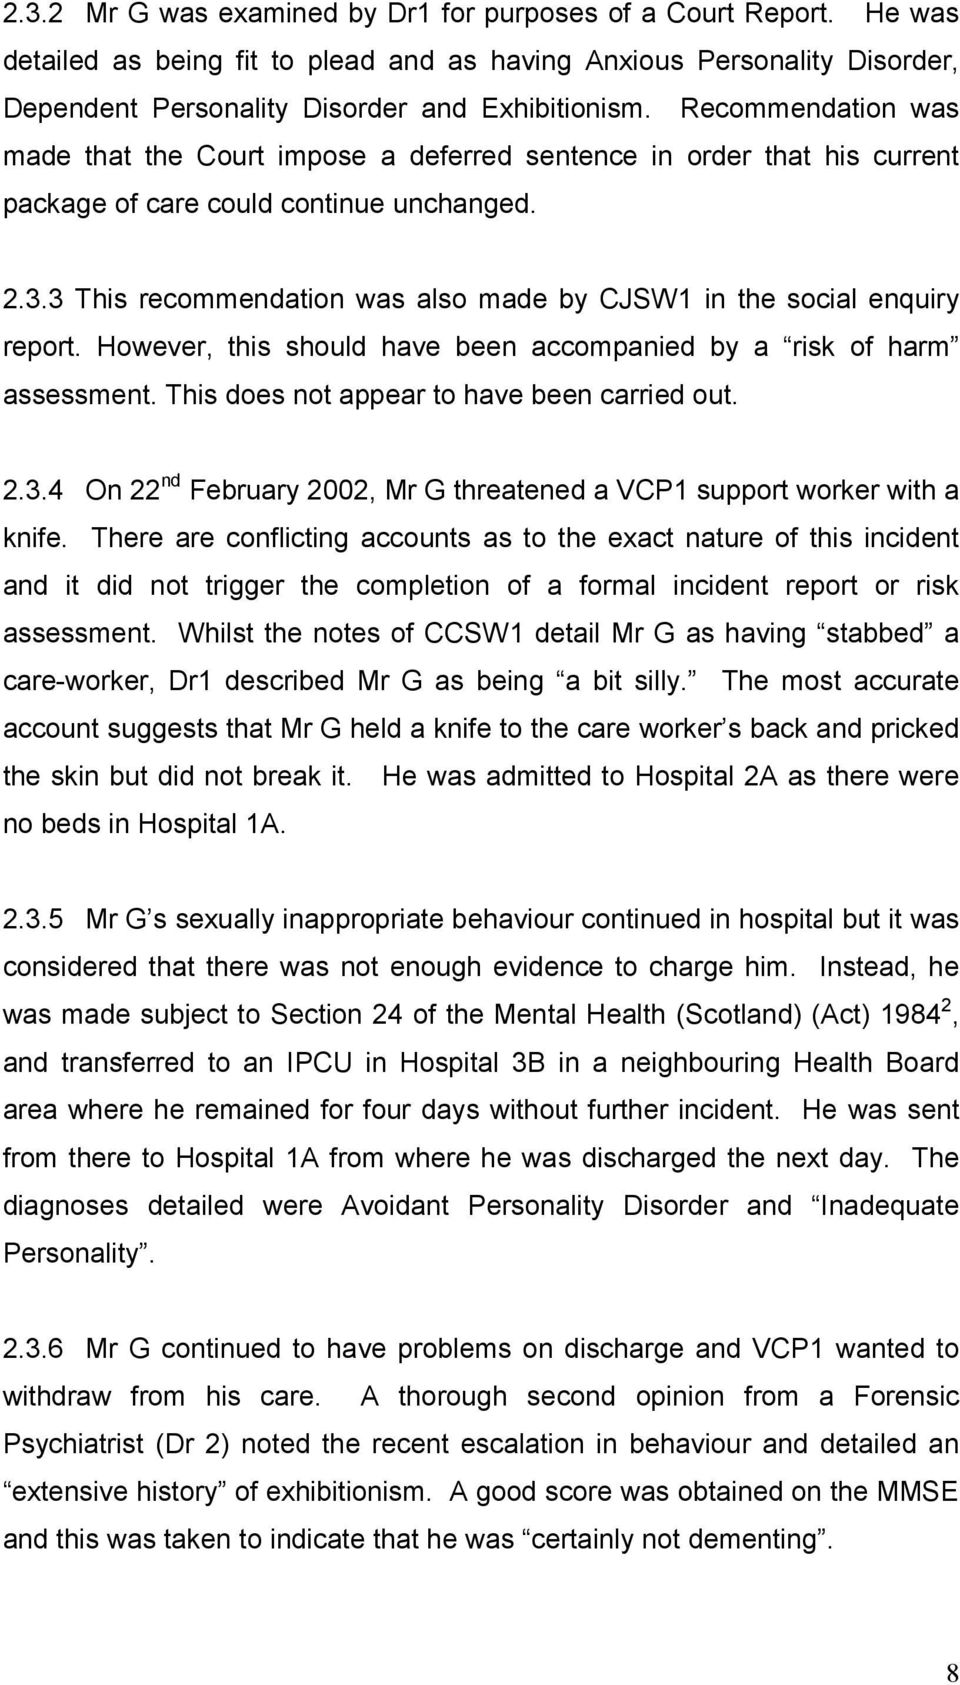 3 This recommendation was also made by CJSW1 in the social enquiry report. However, this should have been accompanied by a risk of harm assessment. This does not appear to have been carried out. 2.3.4 On 22 nd February 2002, Mr G threatened a VCP1 support worker with a knife.